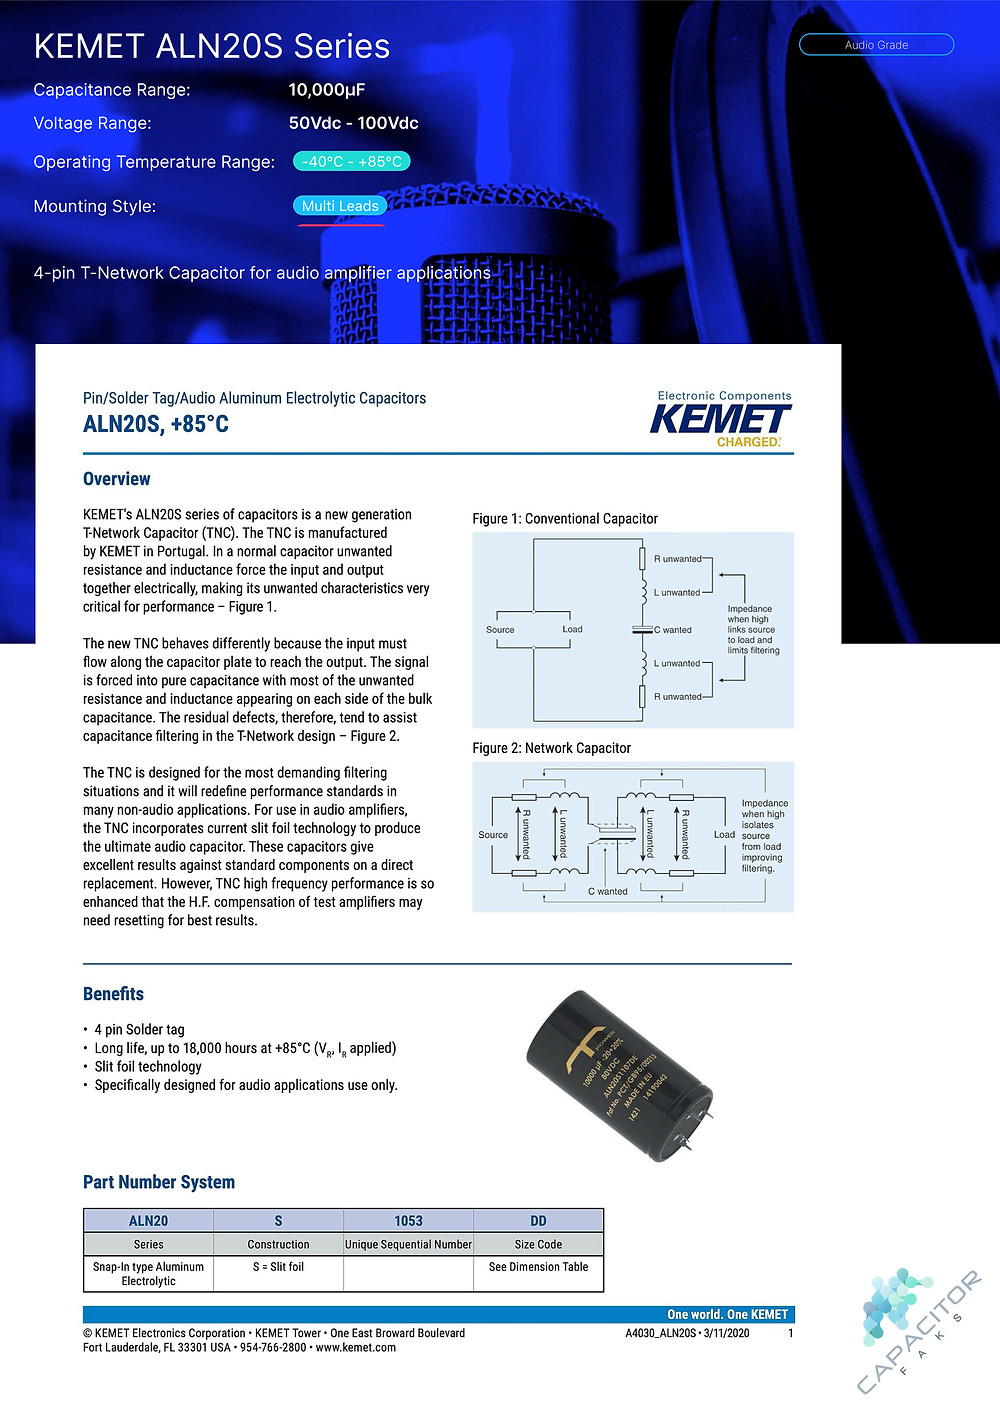 KEMET ALN20S Series Capacitor Data Sheet